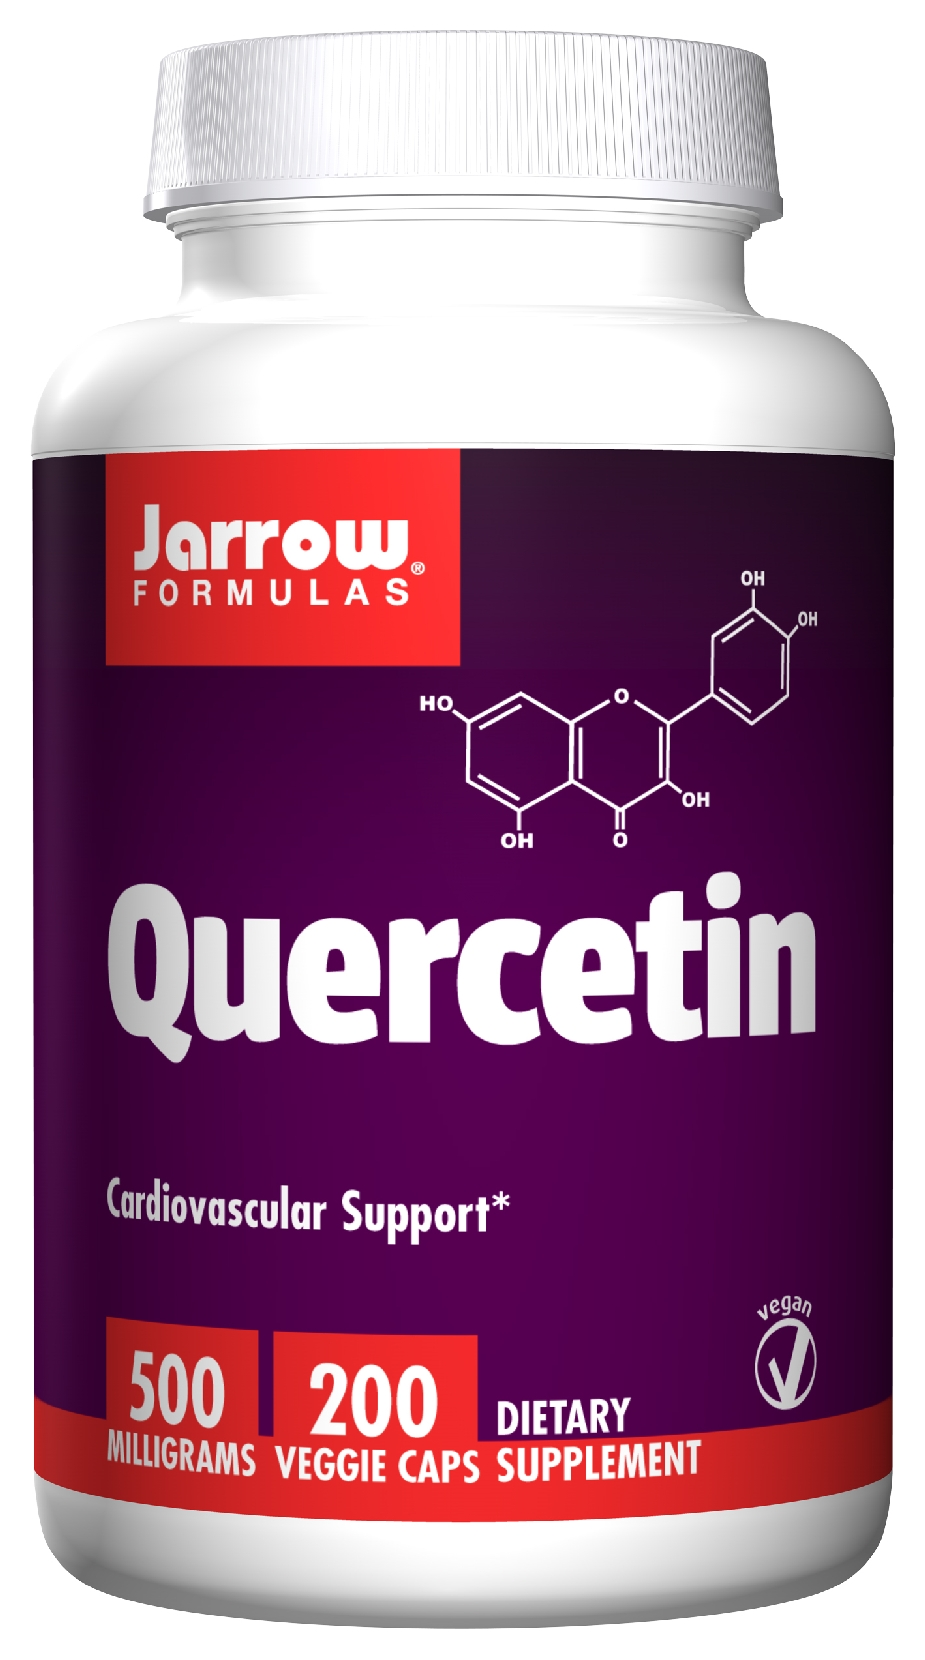 Quercetin 500 mg 200 Vegetarian caps by Jarrow Formulas